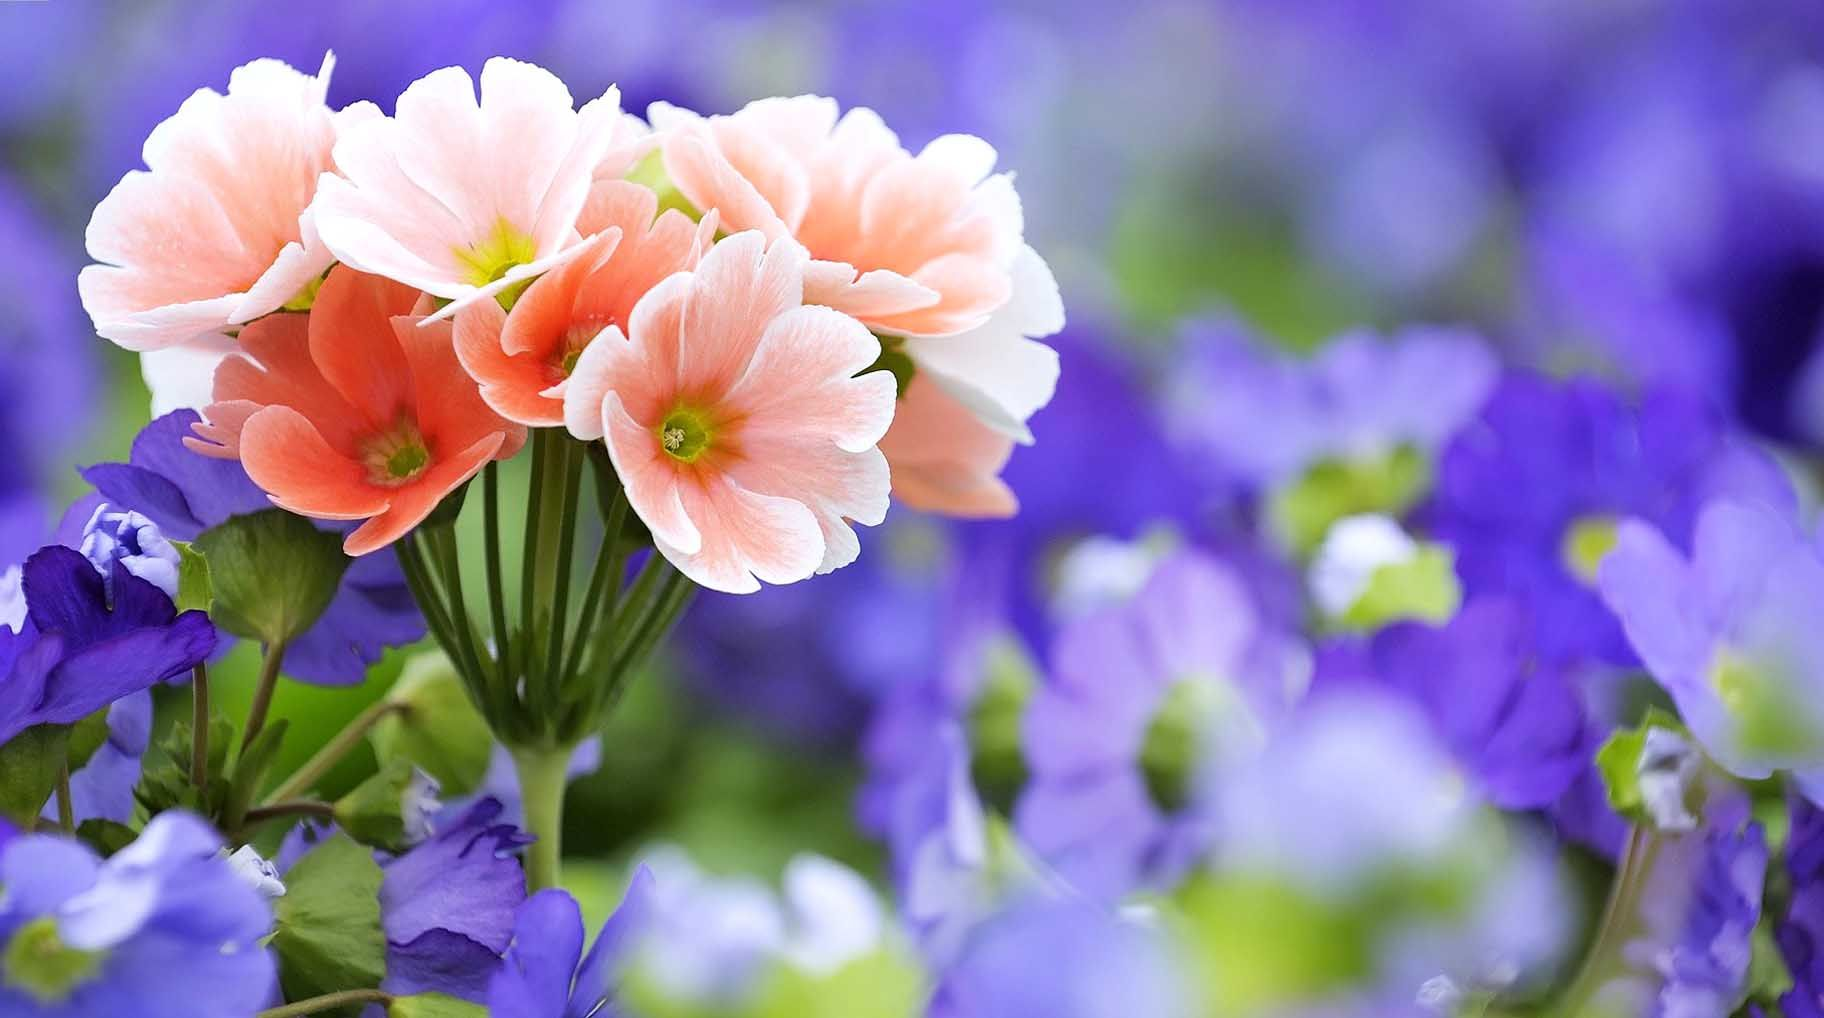 Download Flower Wallpaper Hd Download 31